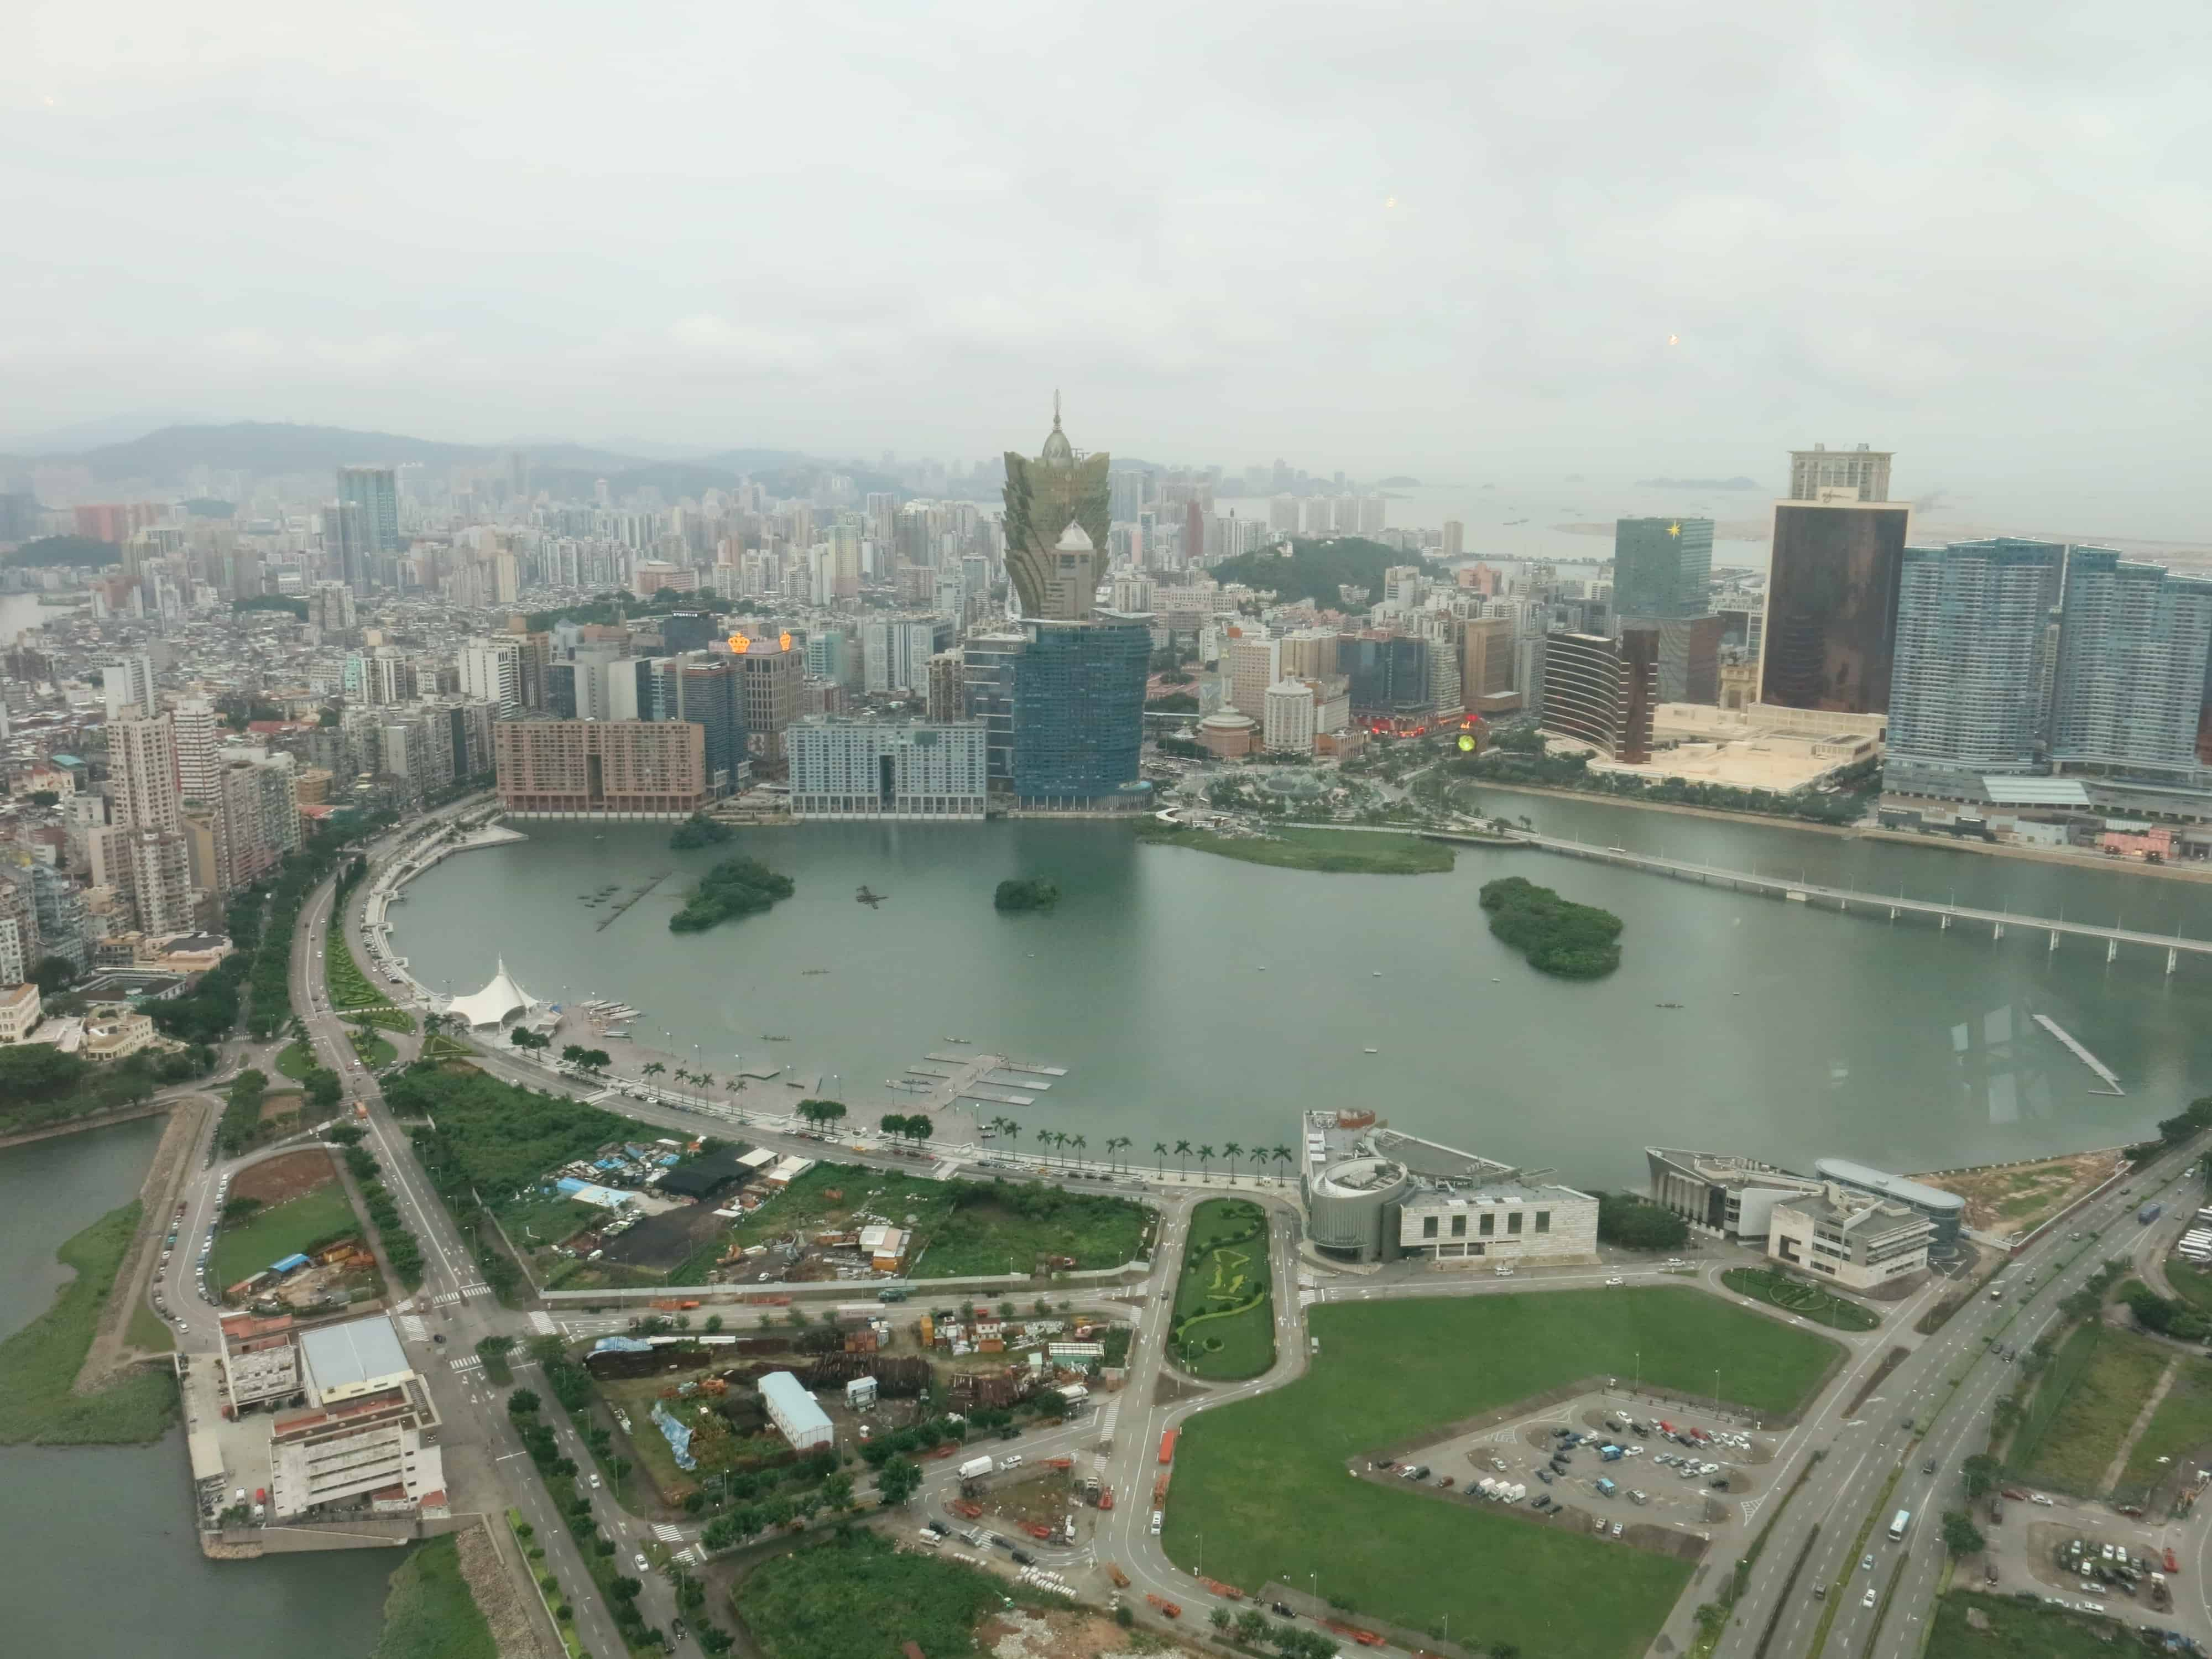 View of the City From Above the Macau Tower